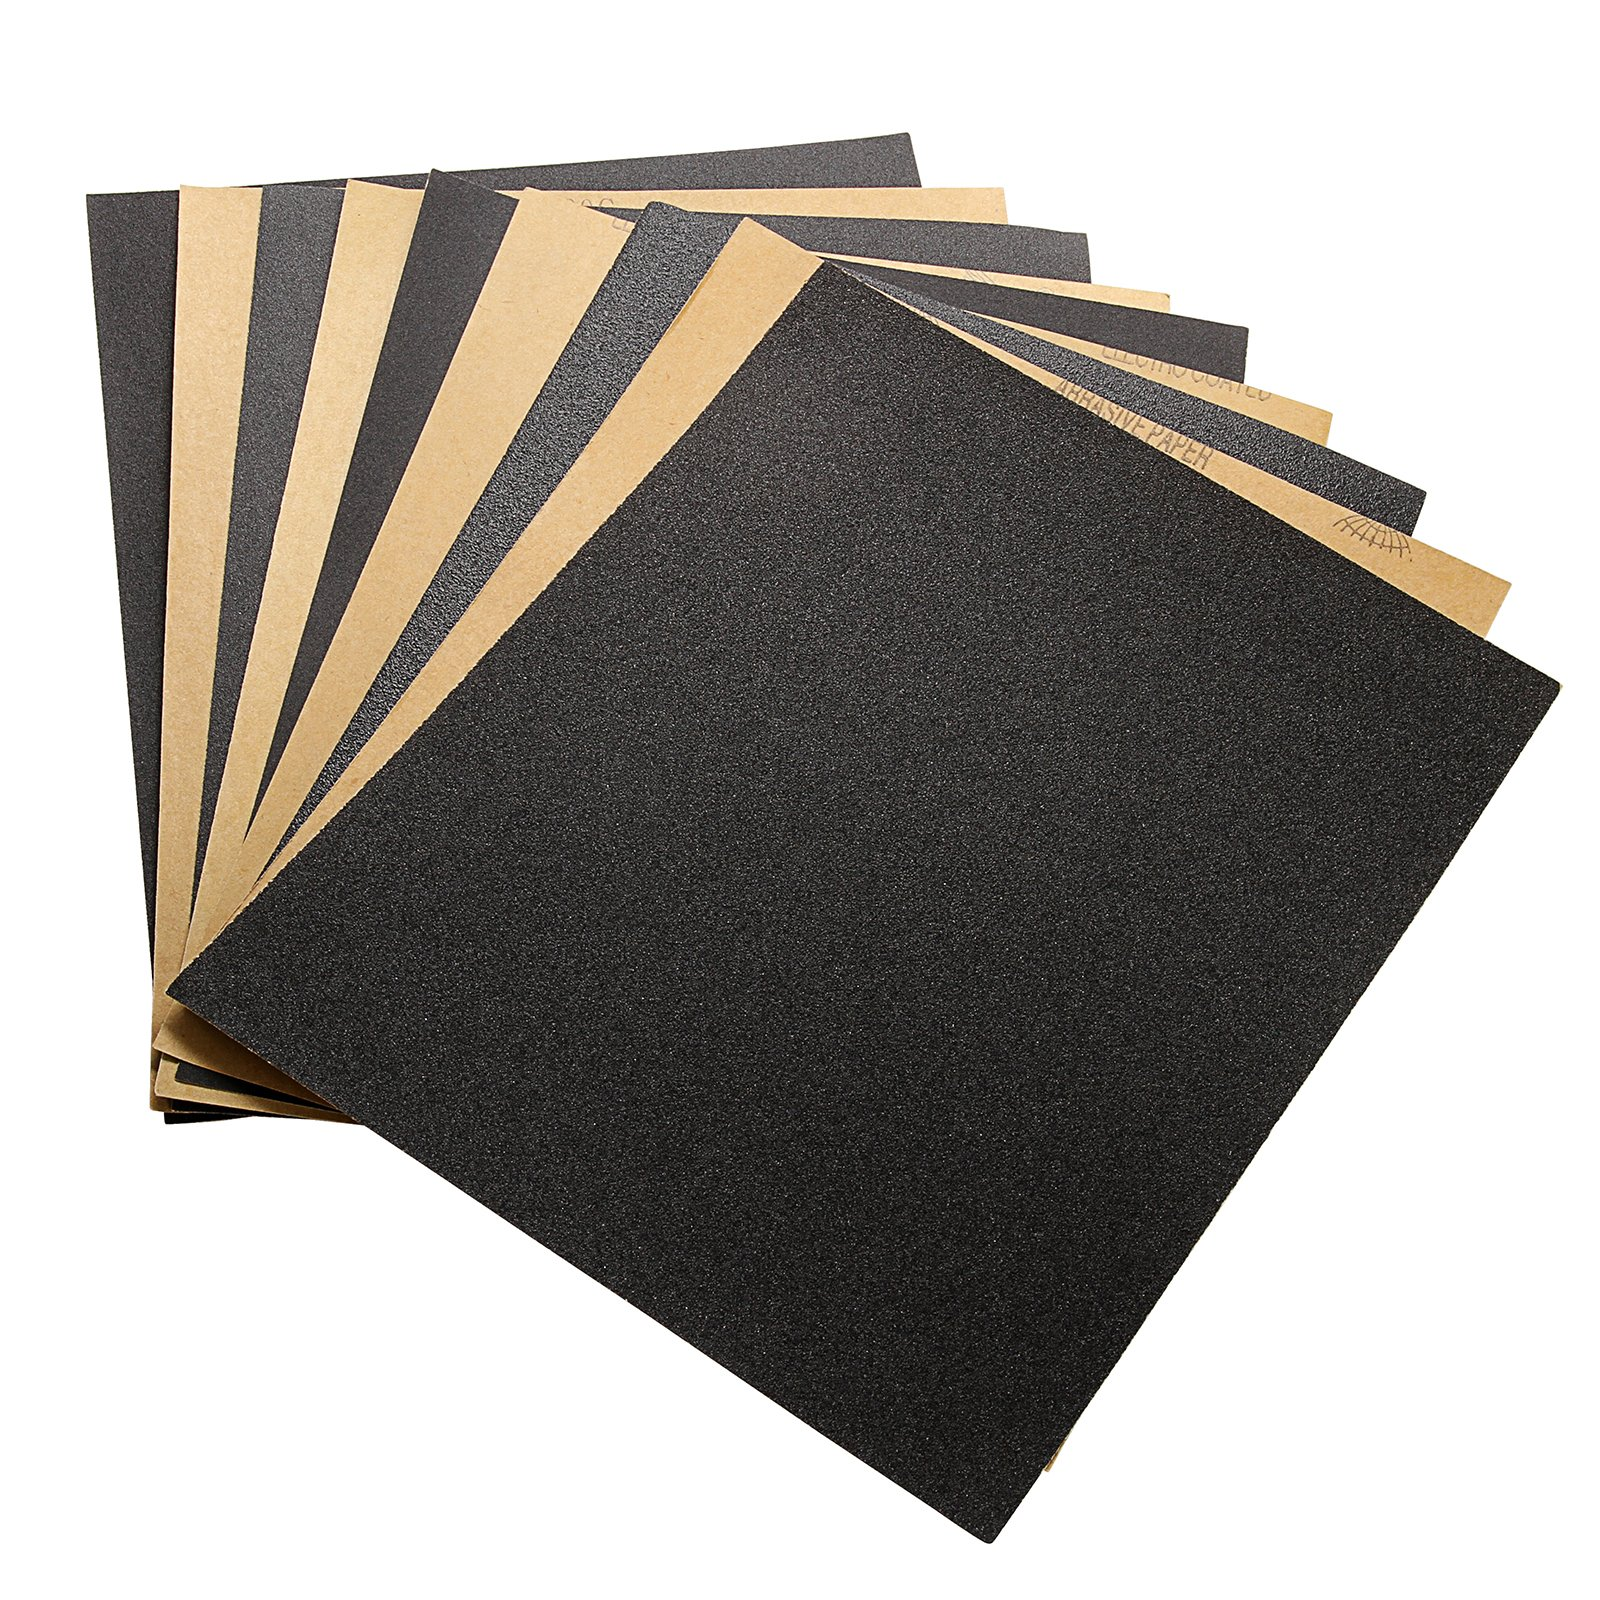 60 To 2000 Assorted Grit Sandpaper for Wood Furniture Finishing, Metal Sanding and Automotive Polishing, Wet or Dry Sanding, 9 x 11 Inch, 34 Sheet by Huayao